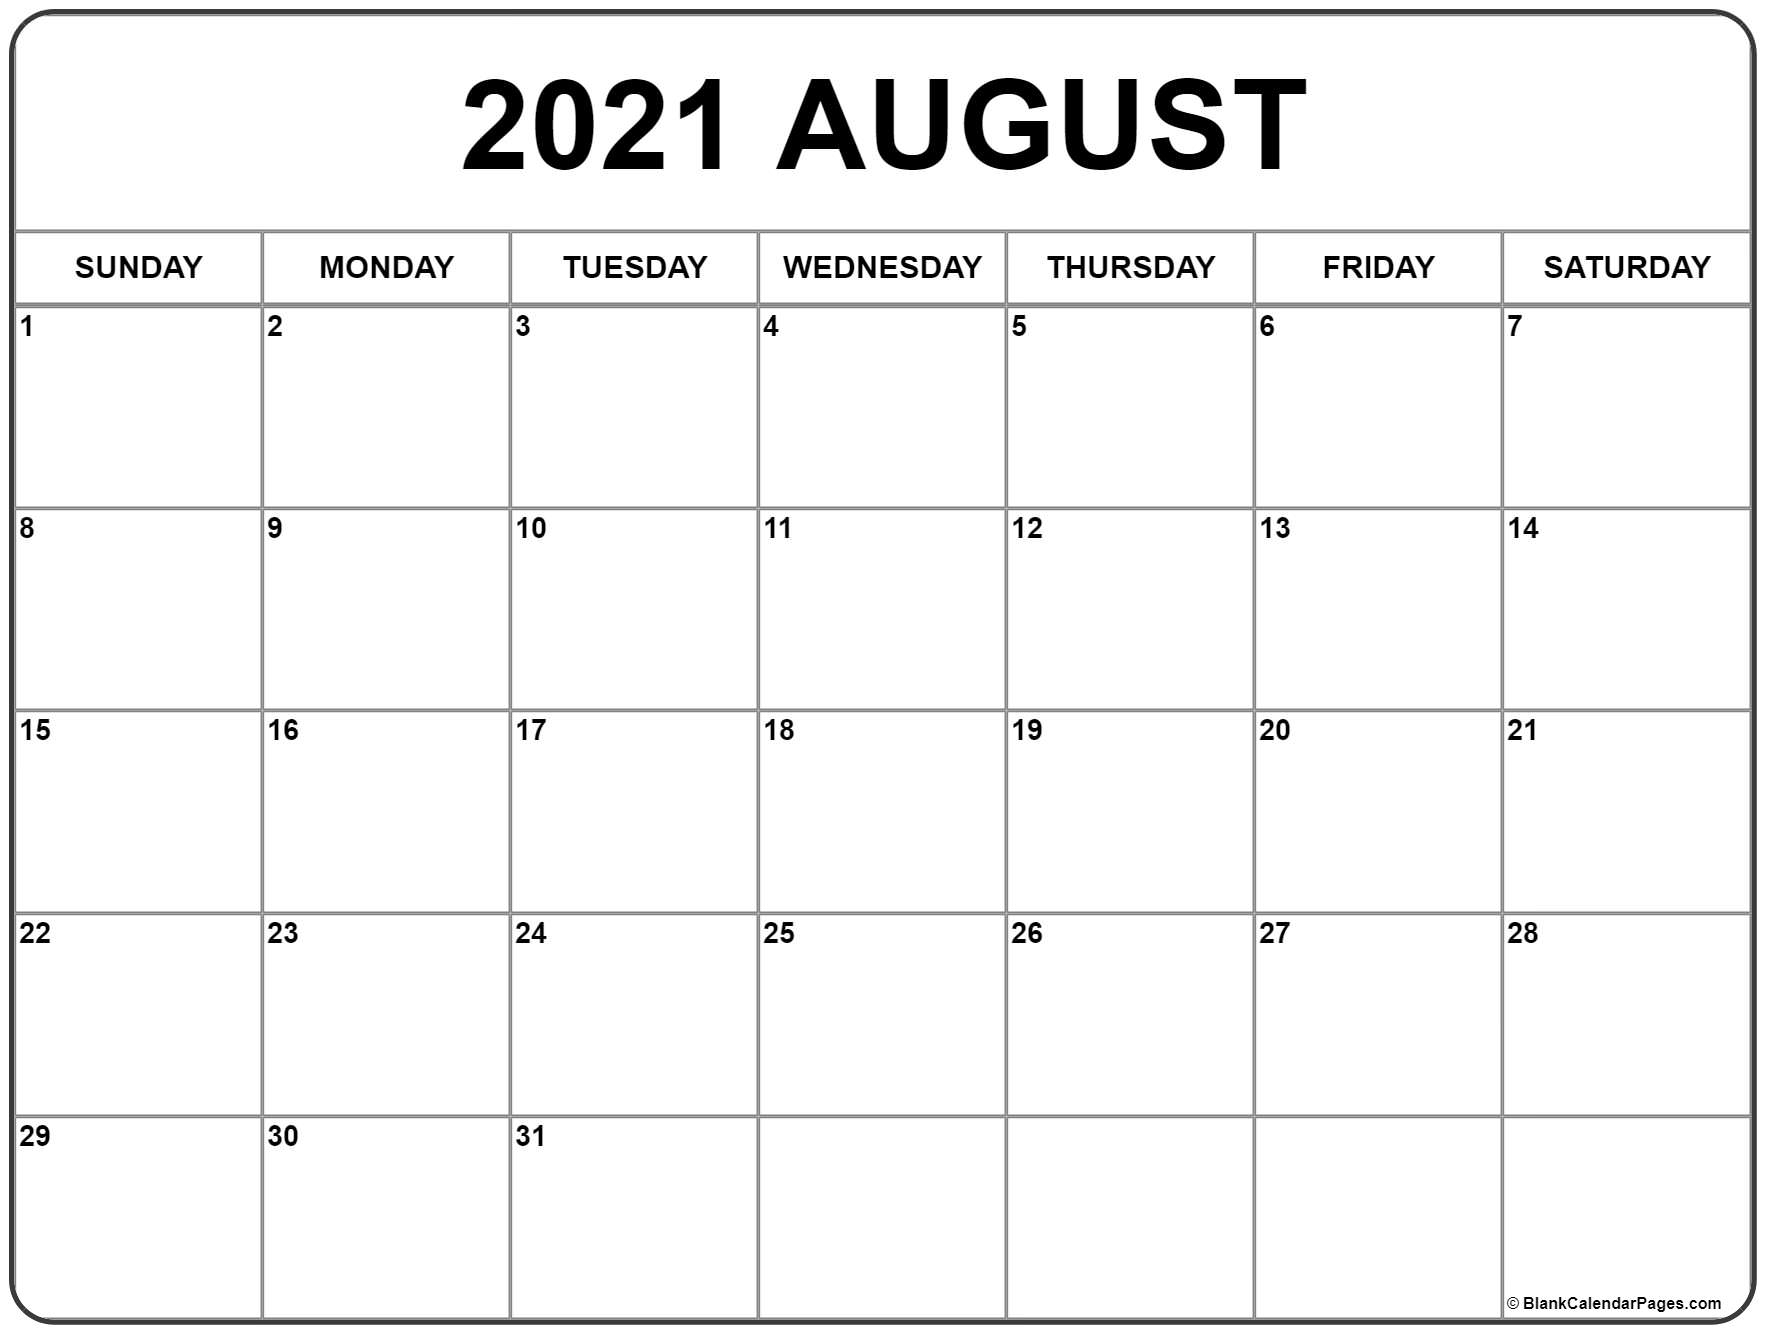 Catch August 2021 Calendar To Fill In